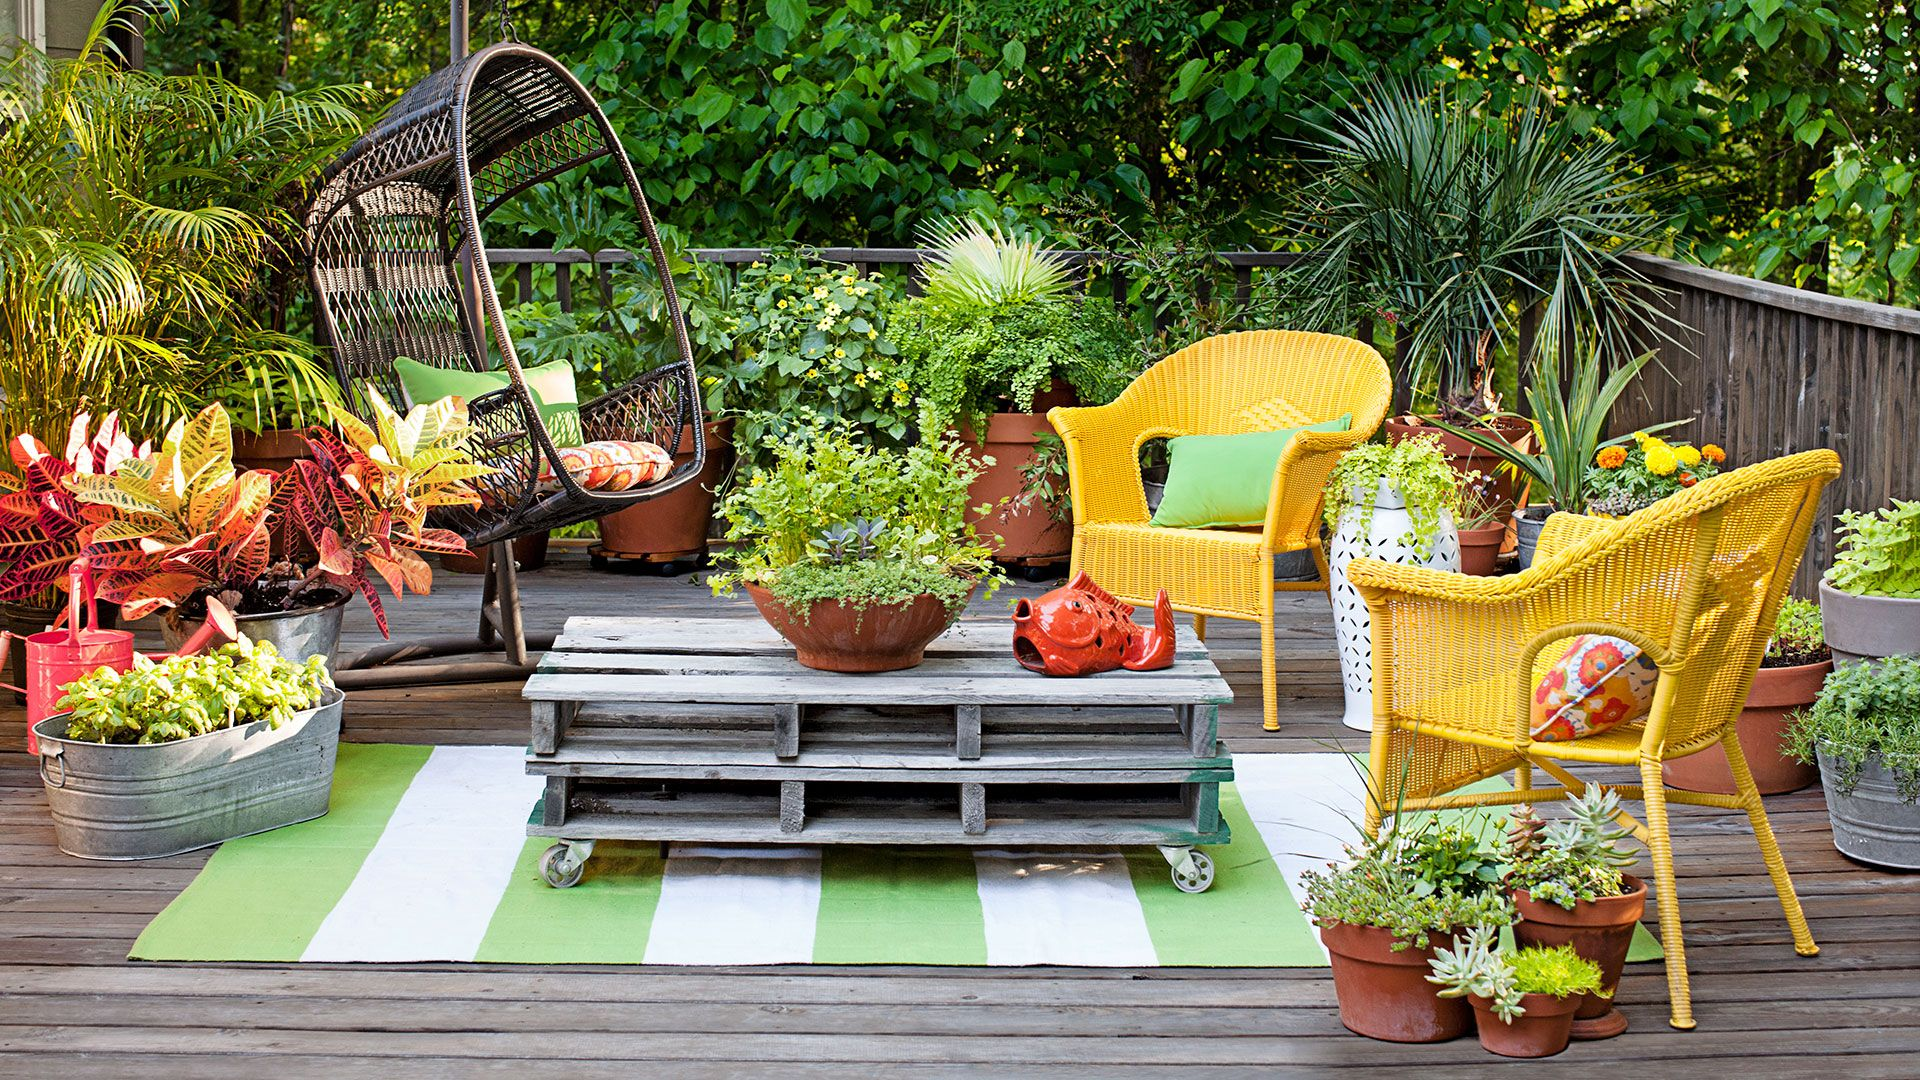 garden chairs & 25 Backyard Decorating Ideas - Easy Gardening Tips and DIY Projects